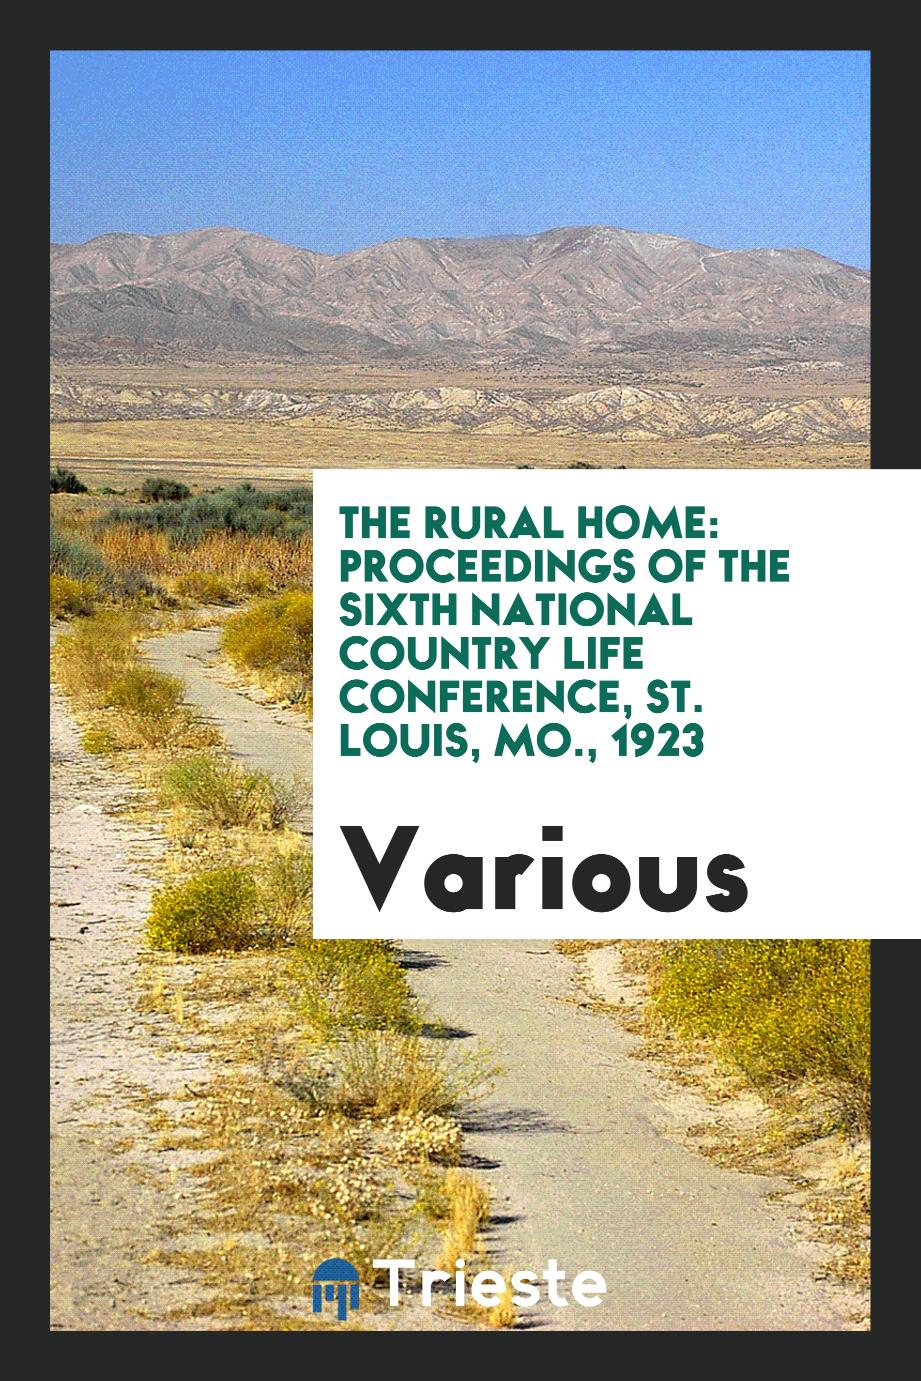 The rural home: proceedings of the sixth National Country Life Conference, St. Louis, Mo., 1923